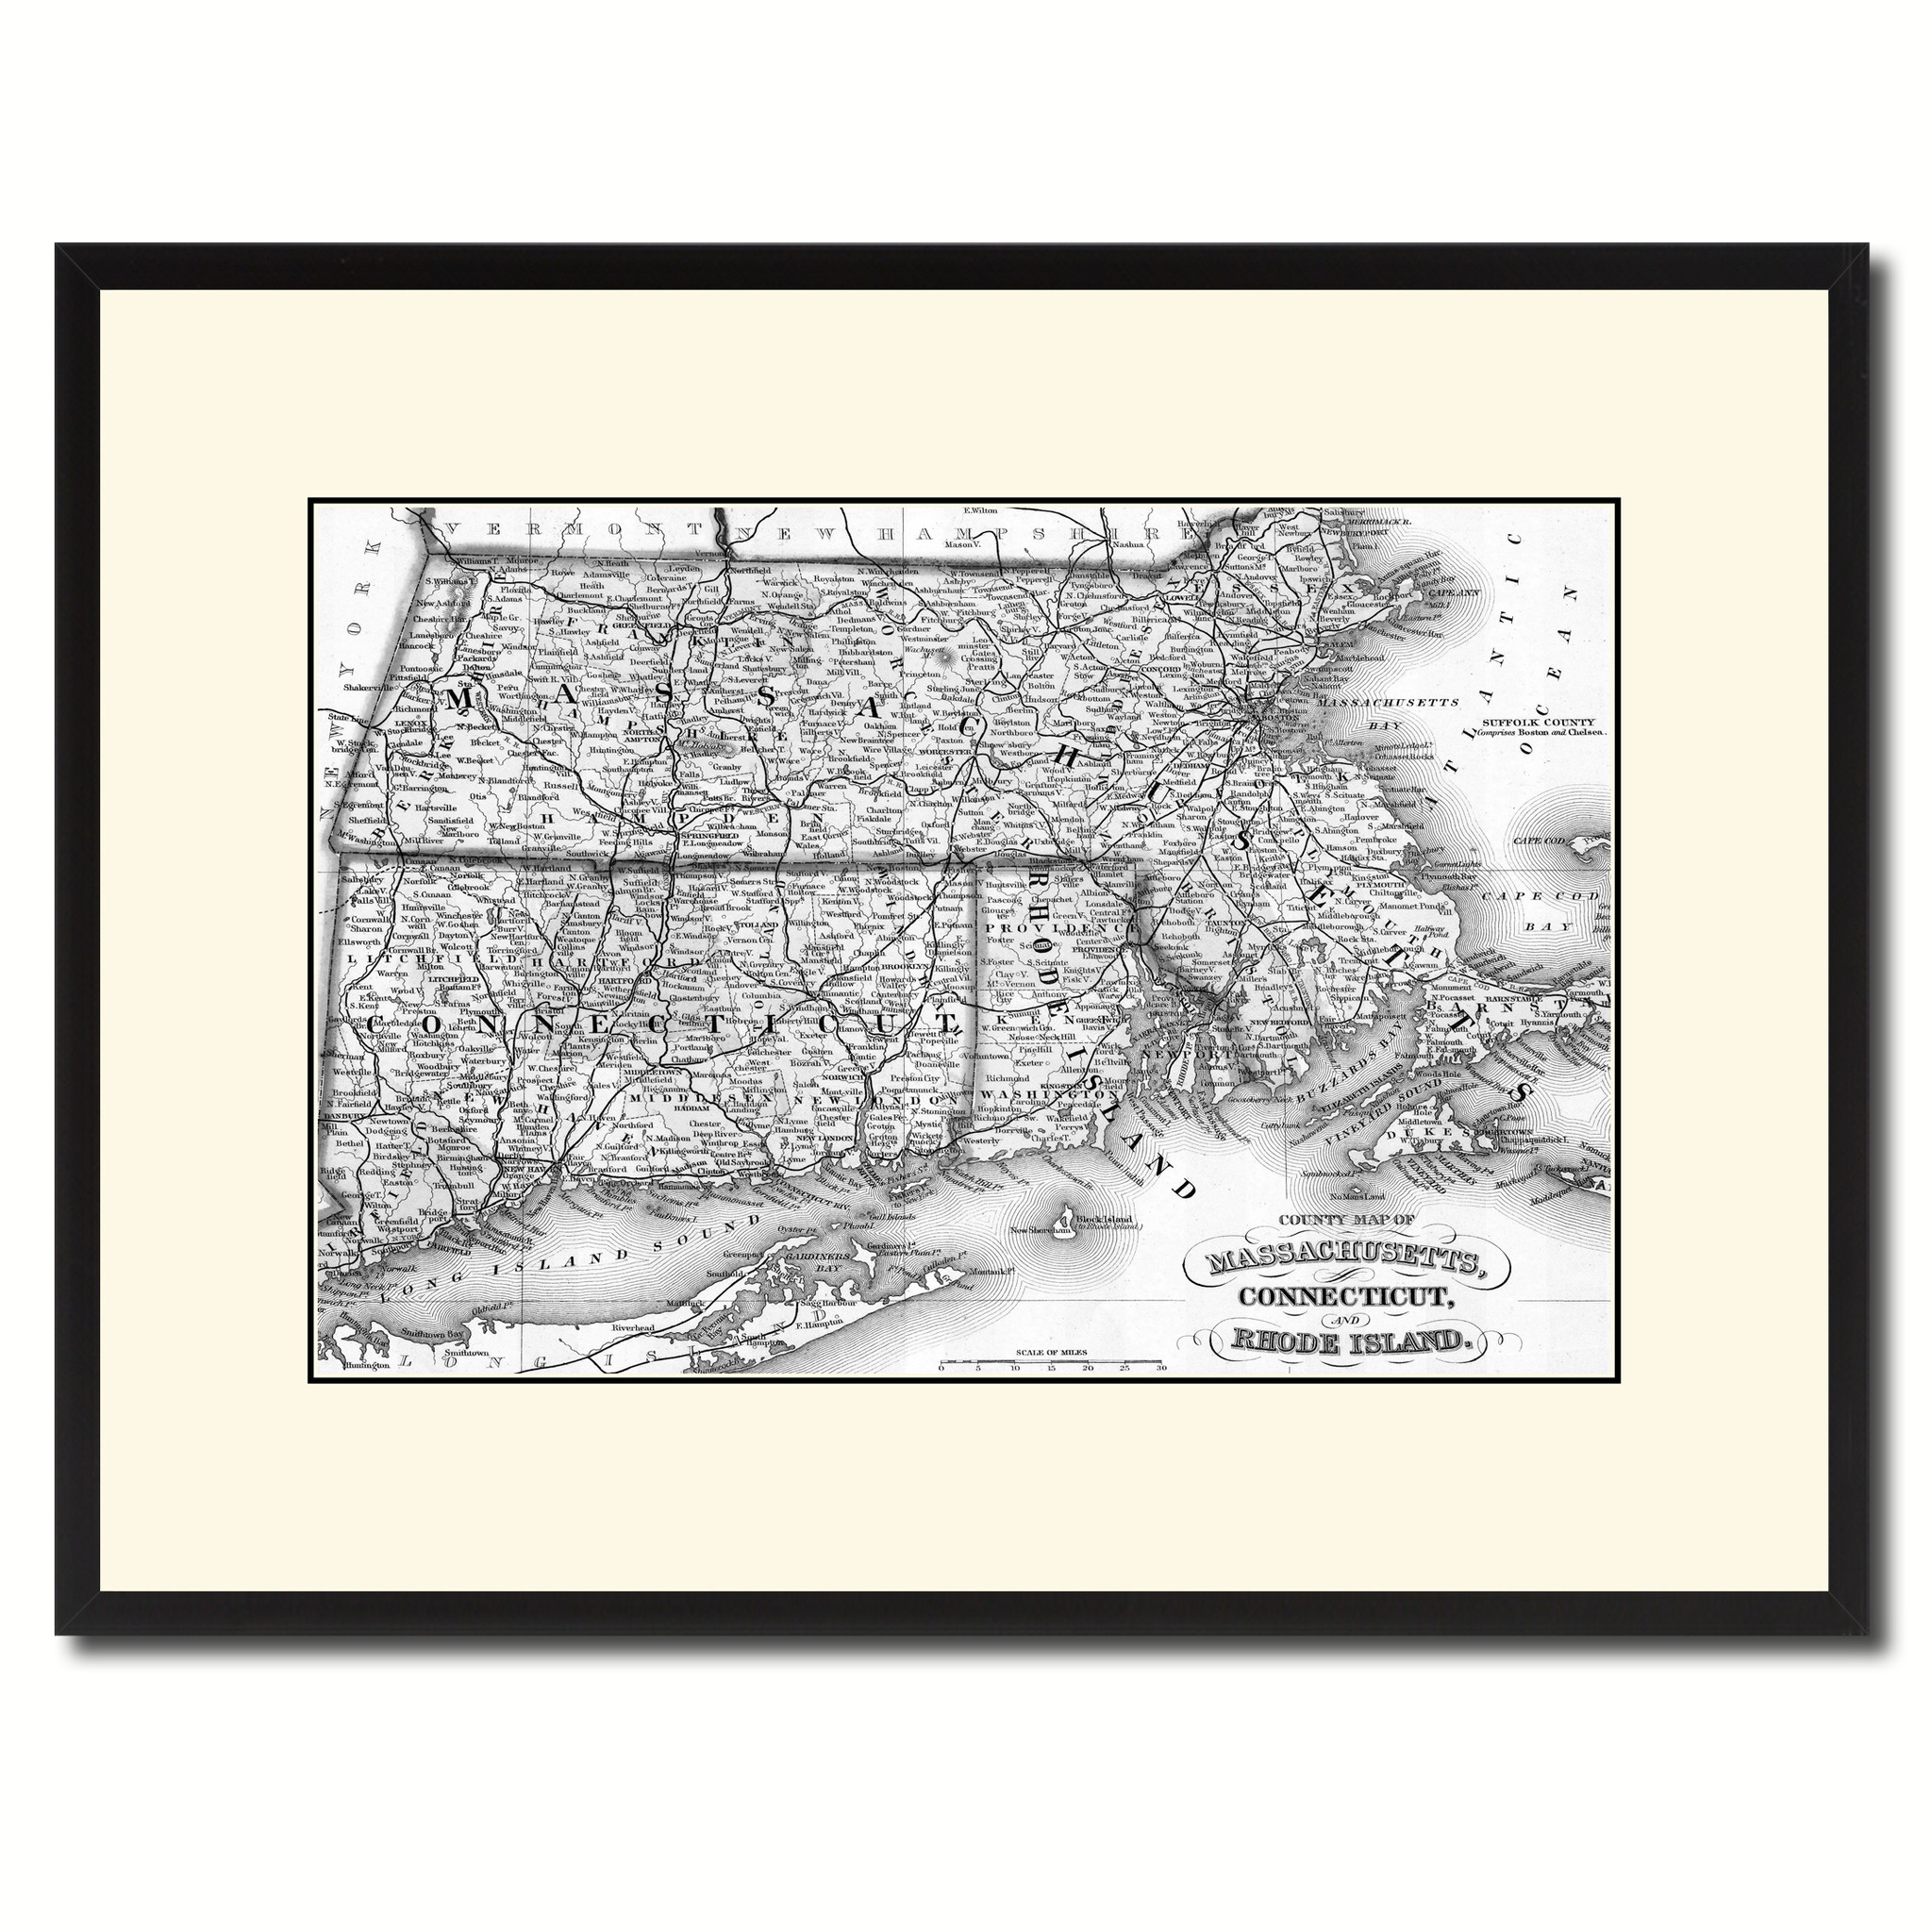 "Massachusetts Connecticut Rhode Island Vintage B&W Map Canvas Print, Picture Frame Home Decor Wall Art Gift Ideas - 16"" x 21\"""